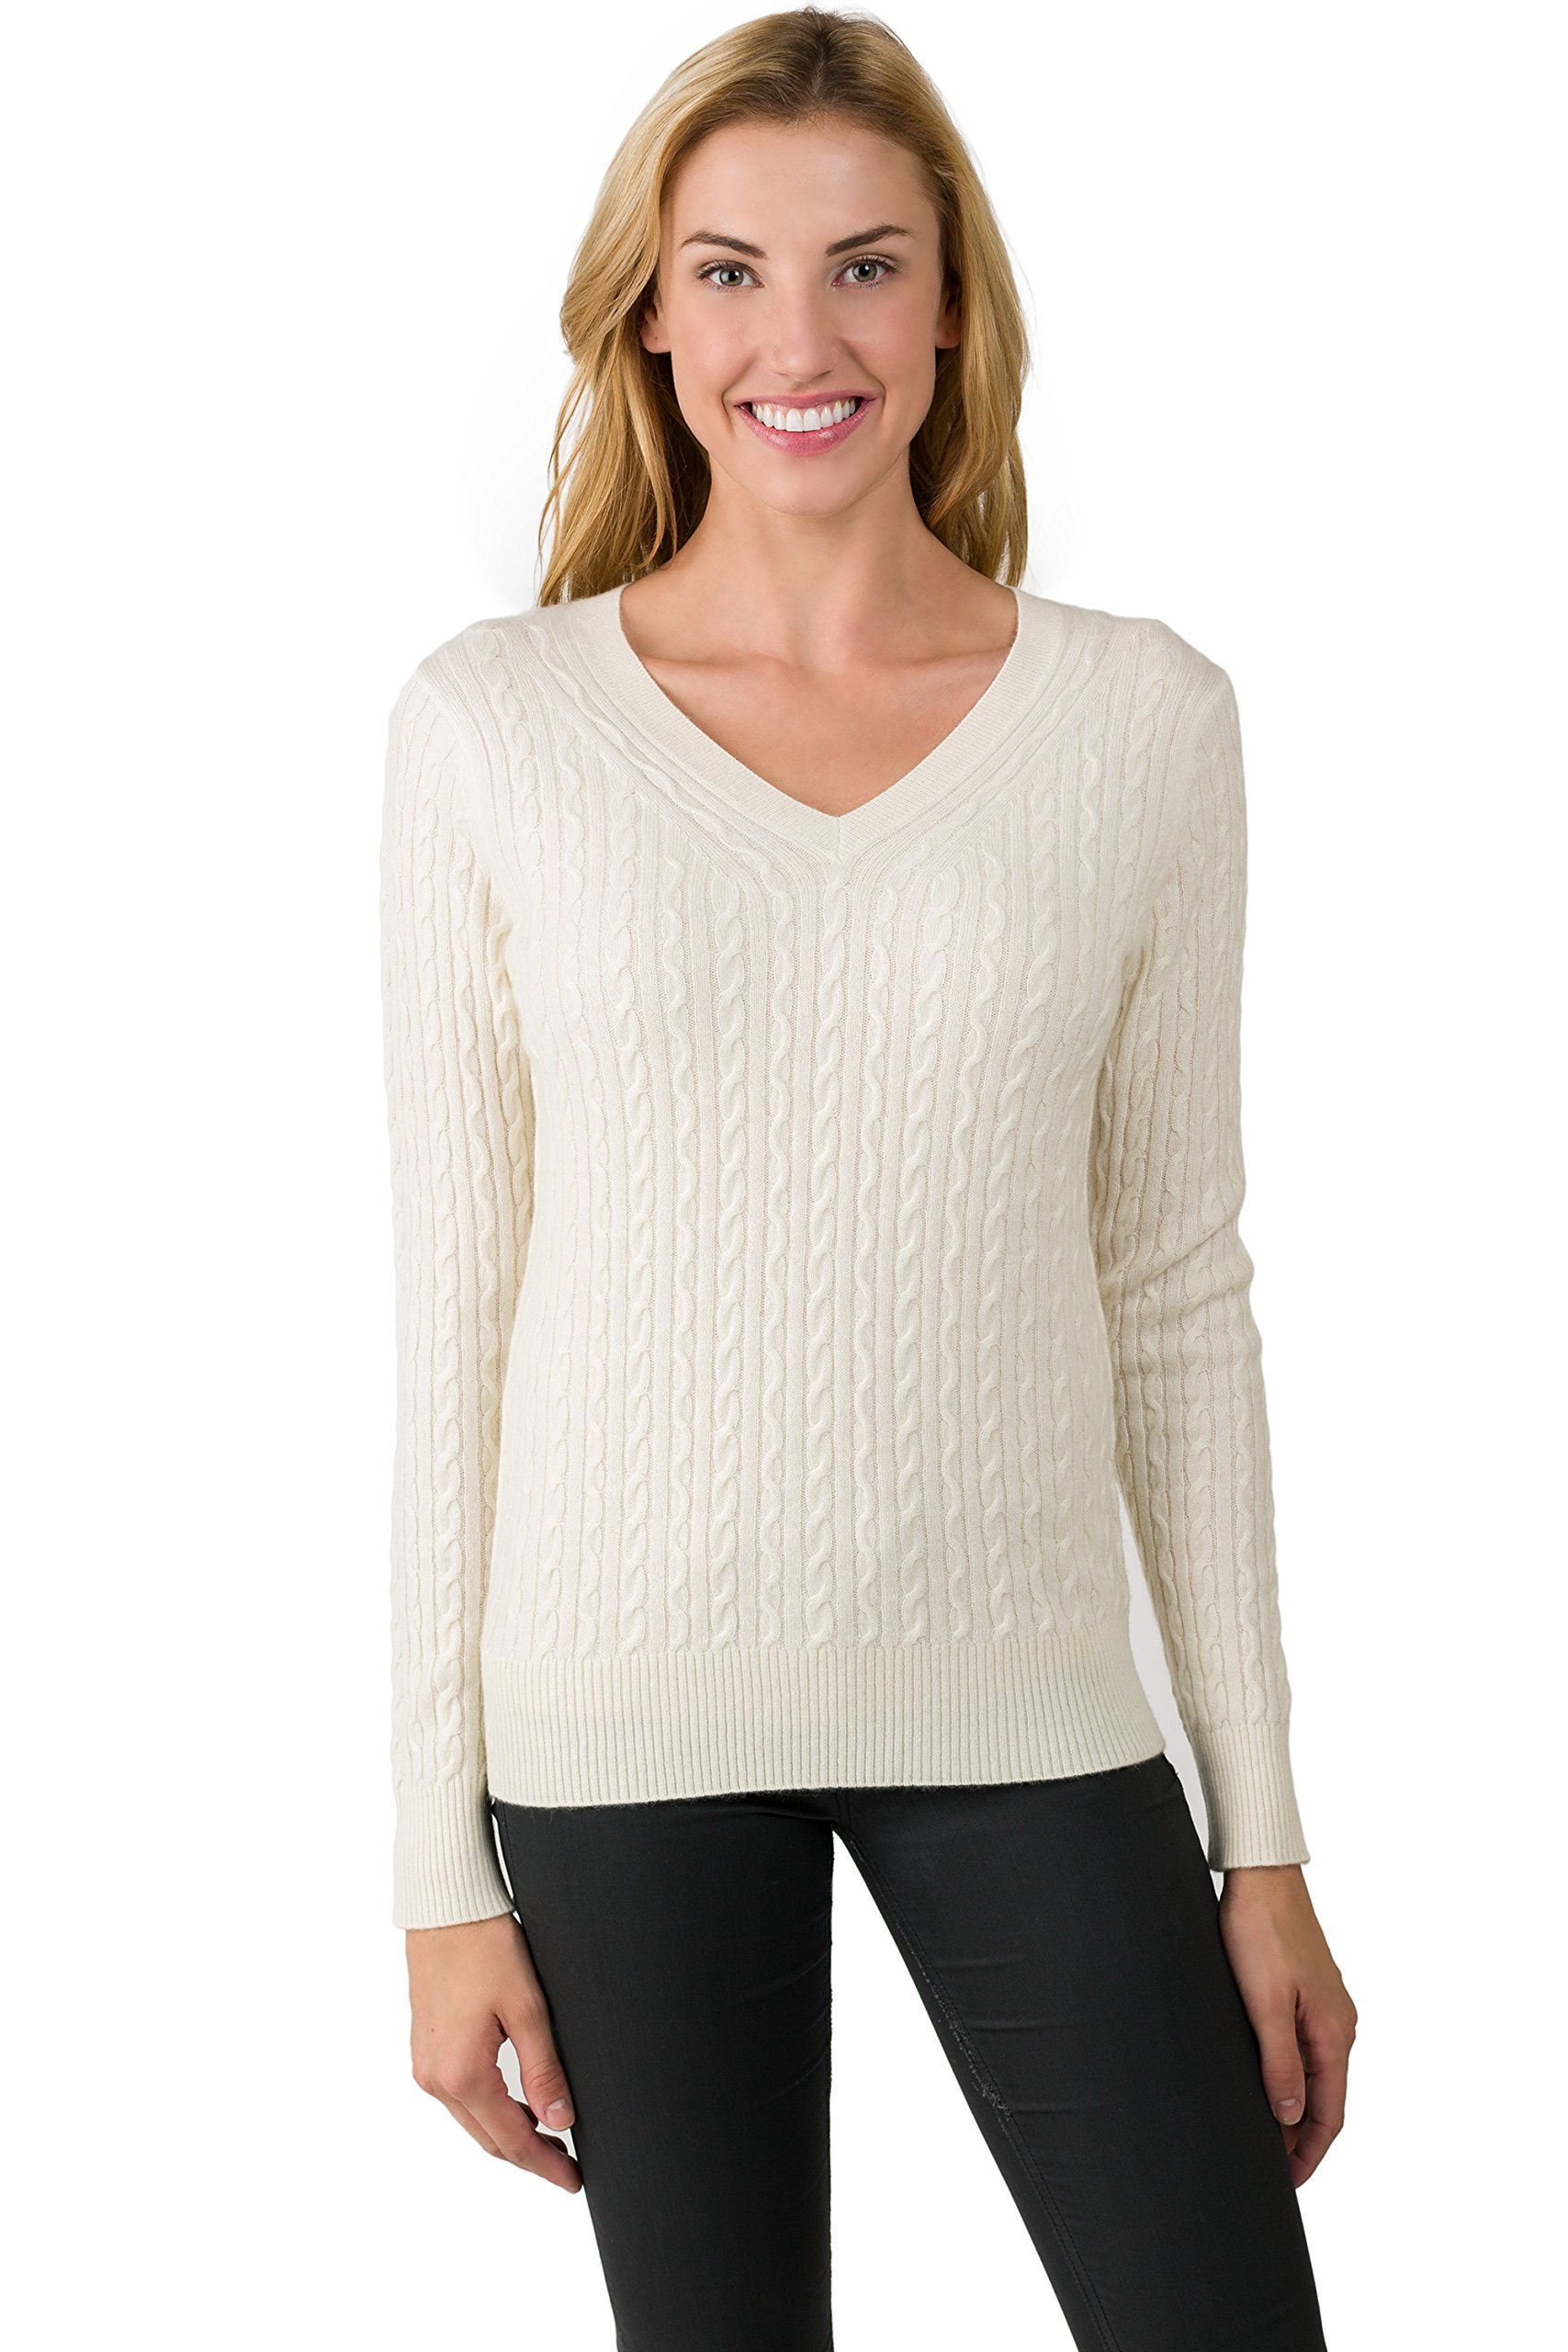 J CASHMERE Women's 100% Cashmere Long Sleeve Pullover Cable-knit V-neck Sweater Cream Medium